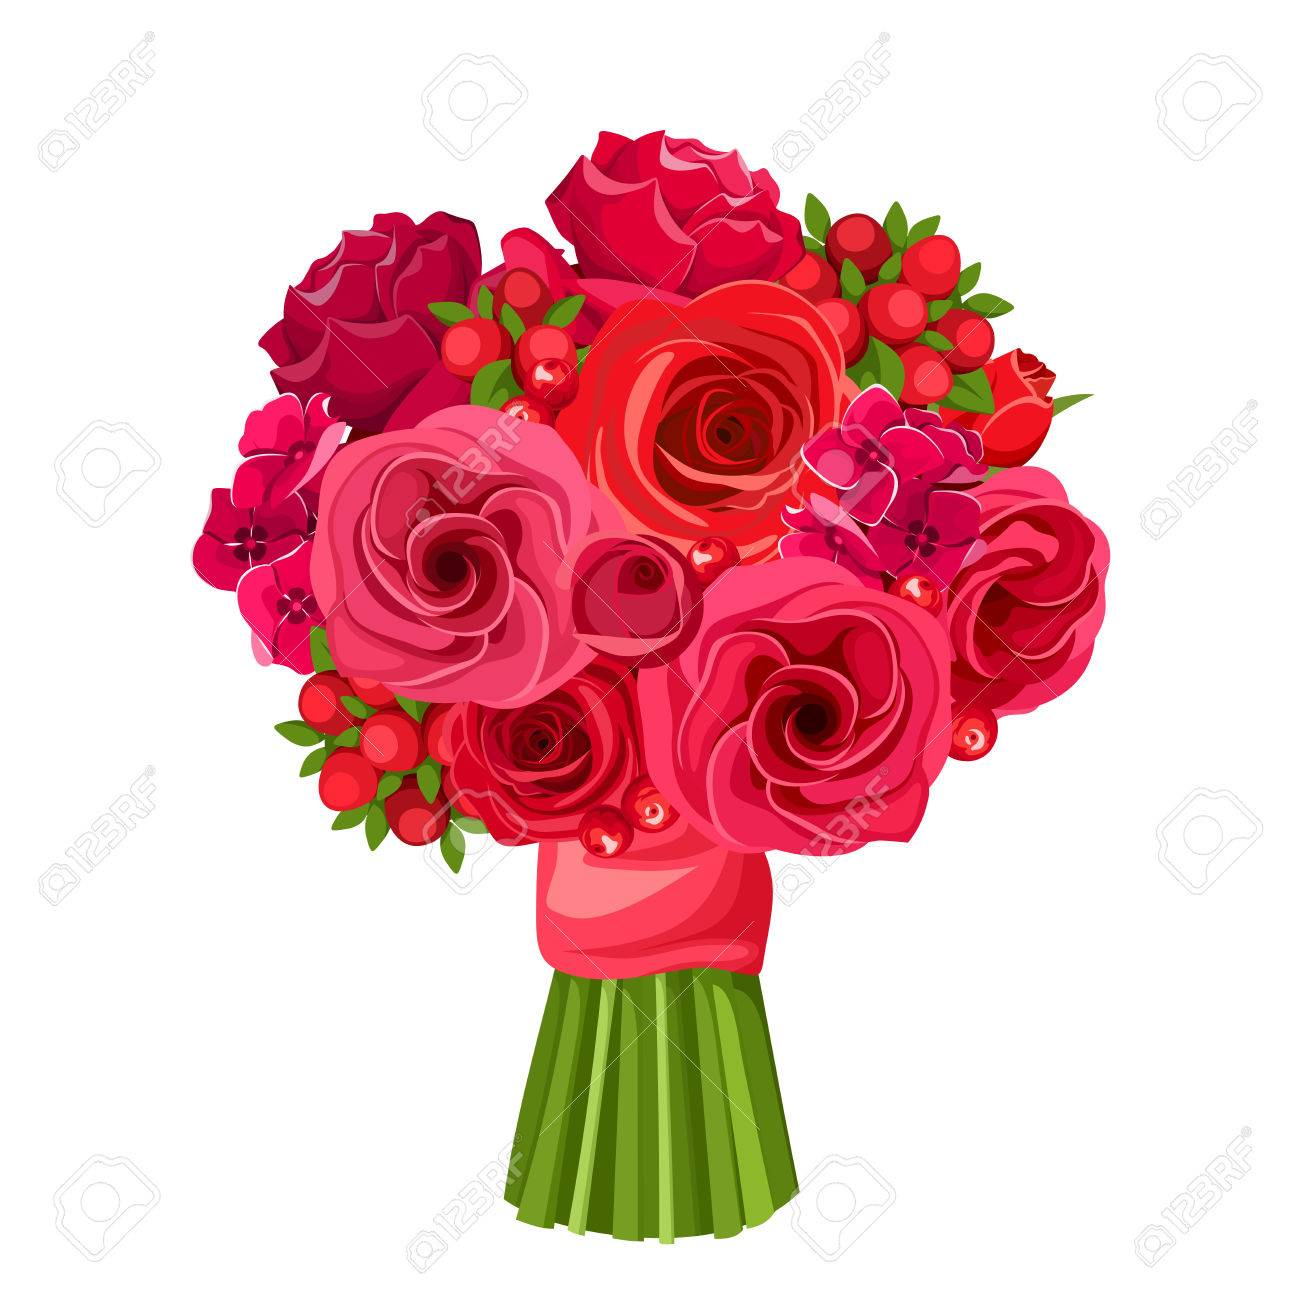 Vector Bouquet Of Red Roses And Lisianthus Flowers Isolated On A